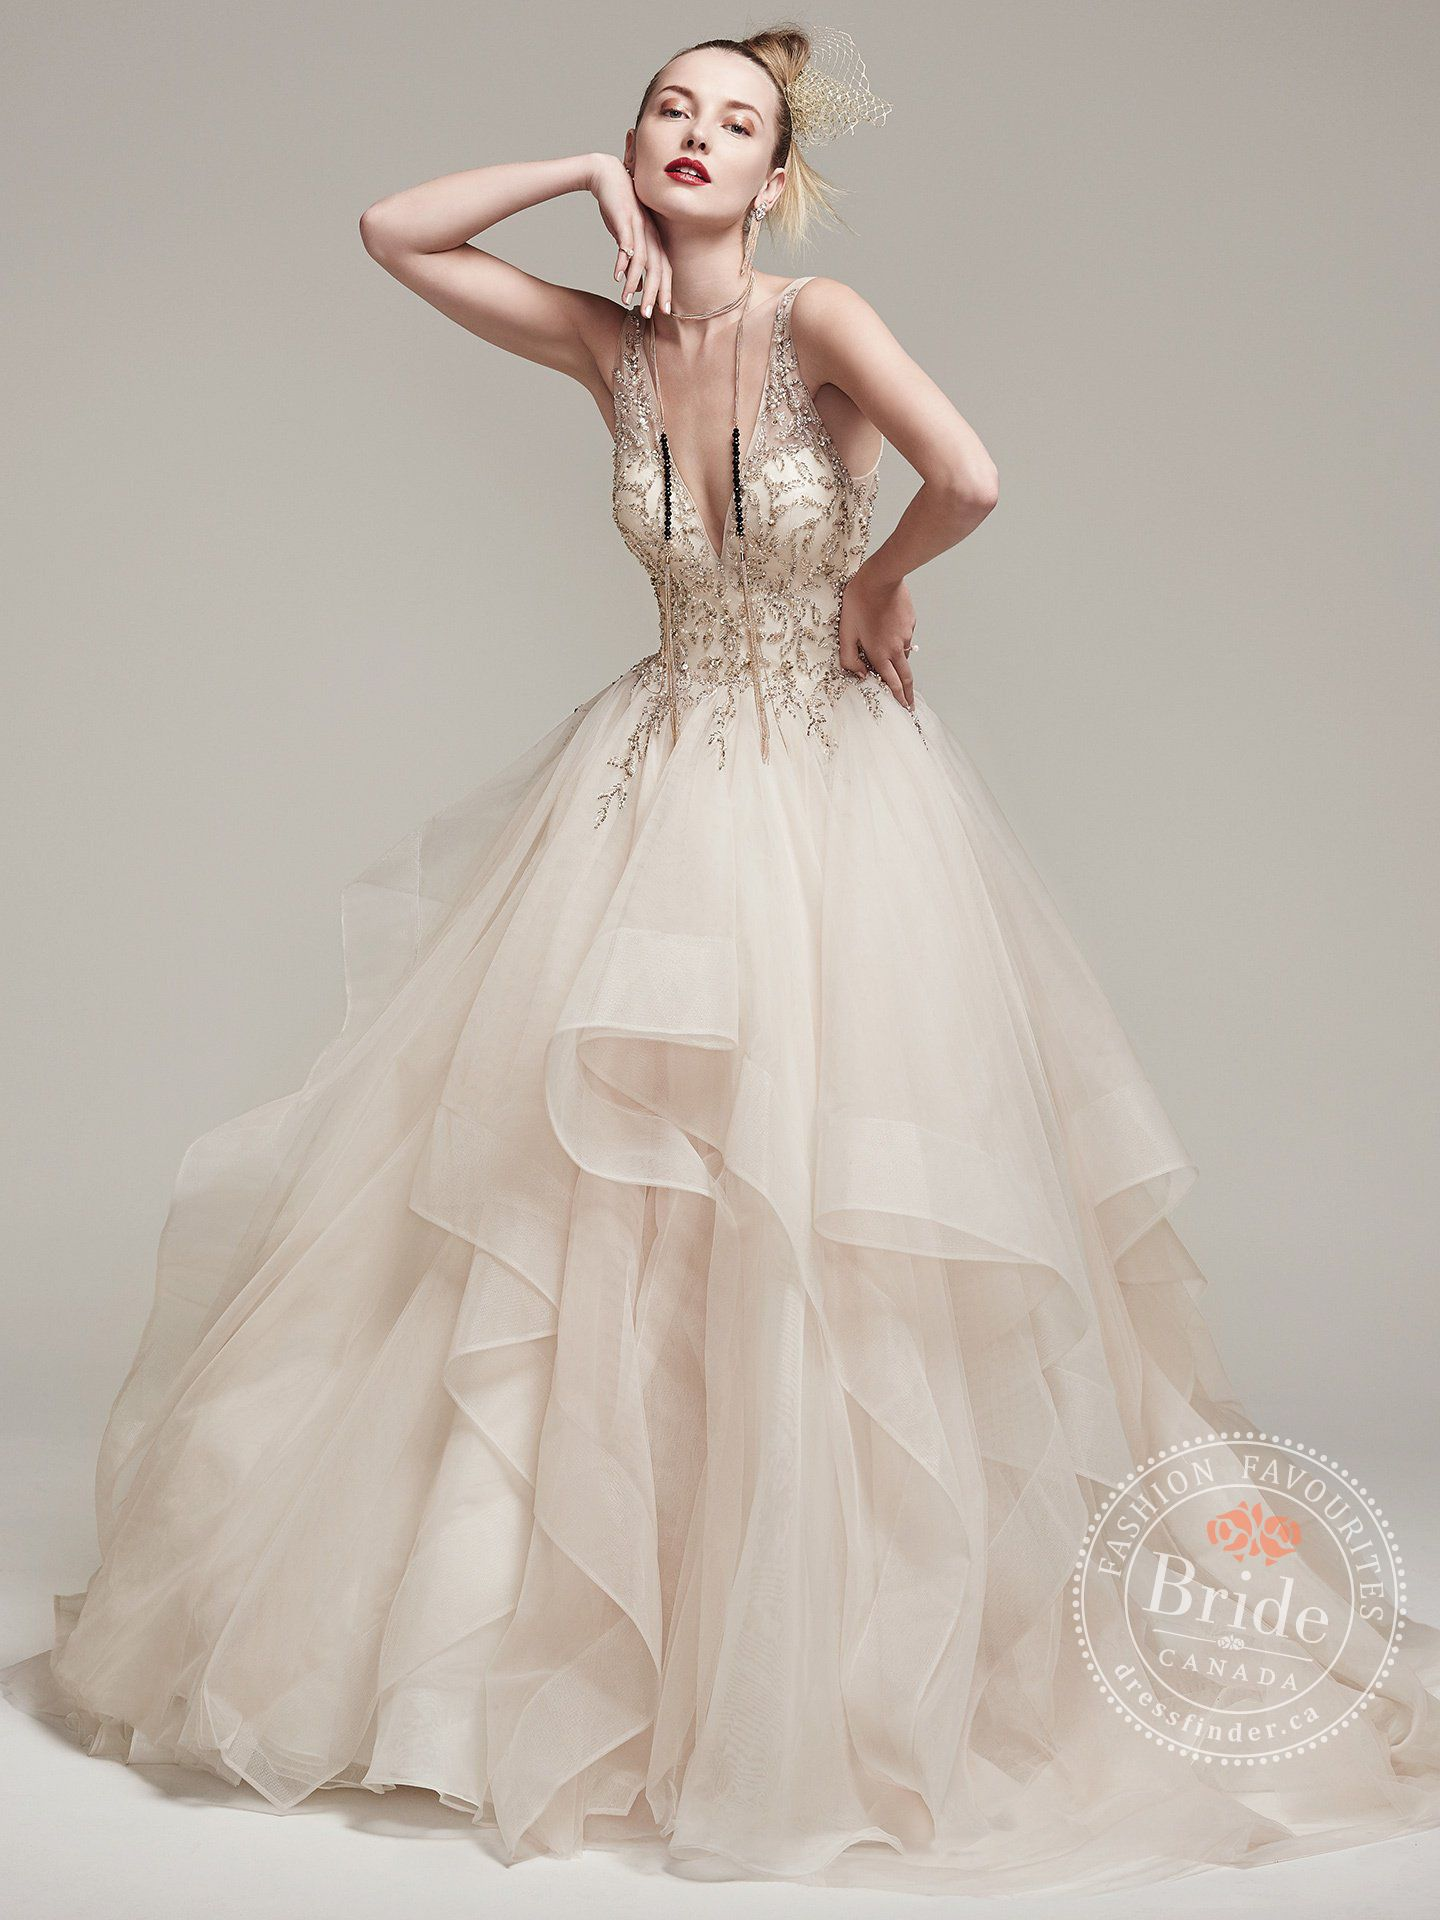 6 amelie by sottero midgley maggie sottero designs sottero midgley fall 2016 bridal sleeveless deep v neck heavily embellished bodice layered tiered princess ball gown a line wedding dress low back v back ombrellifo Choice Image